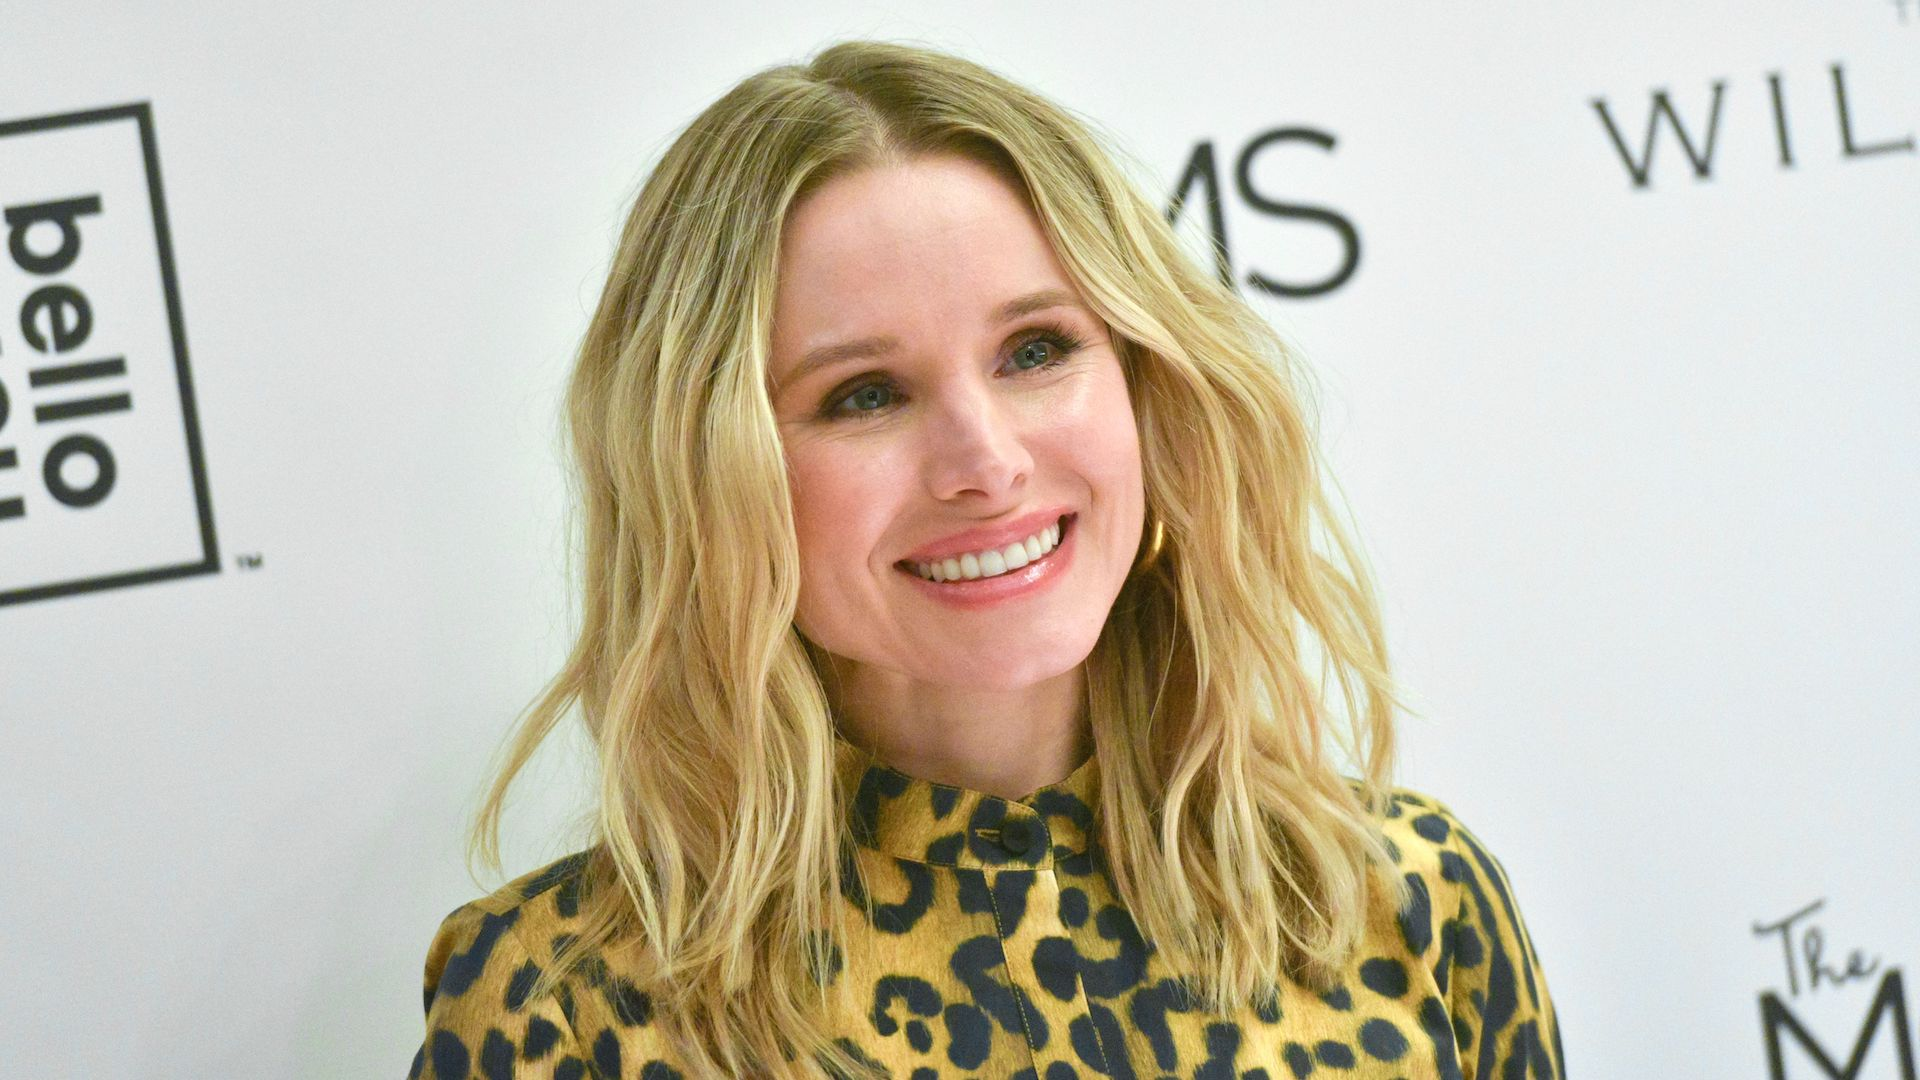 Kristen Bell Was Annoyed With Bradley Cooper for Such a Relatable Reason - SheKnows